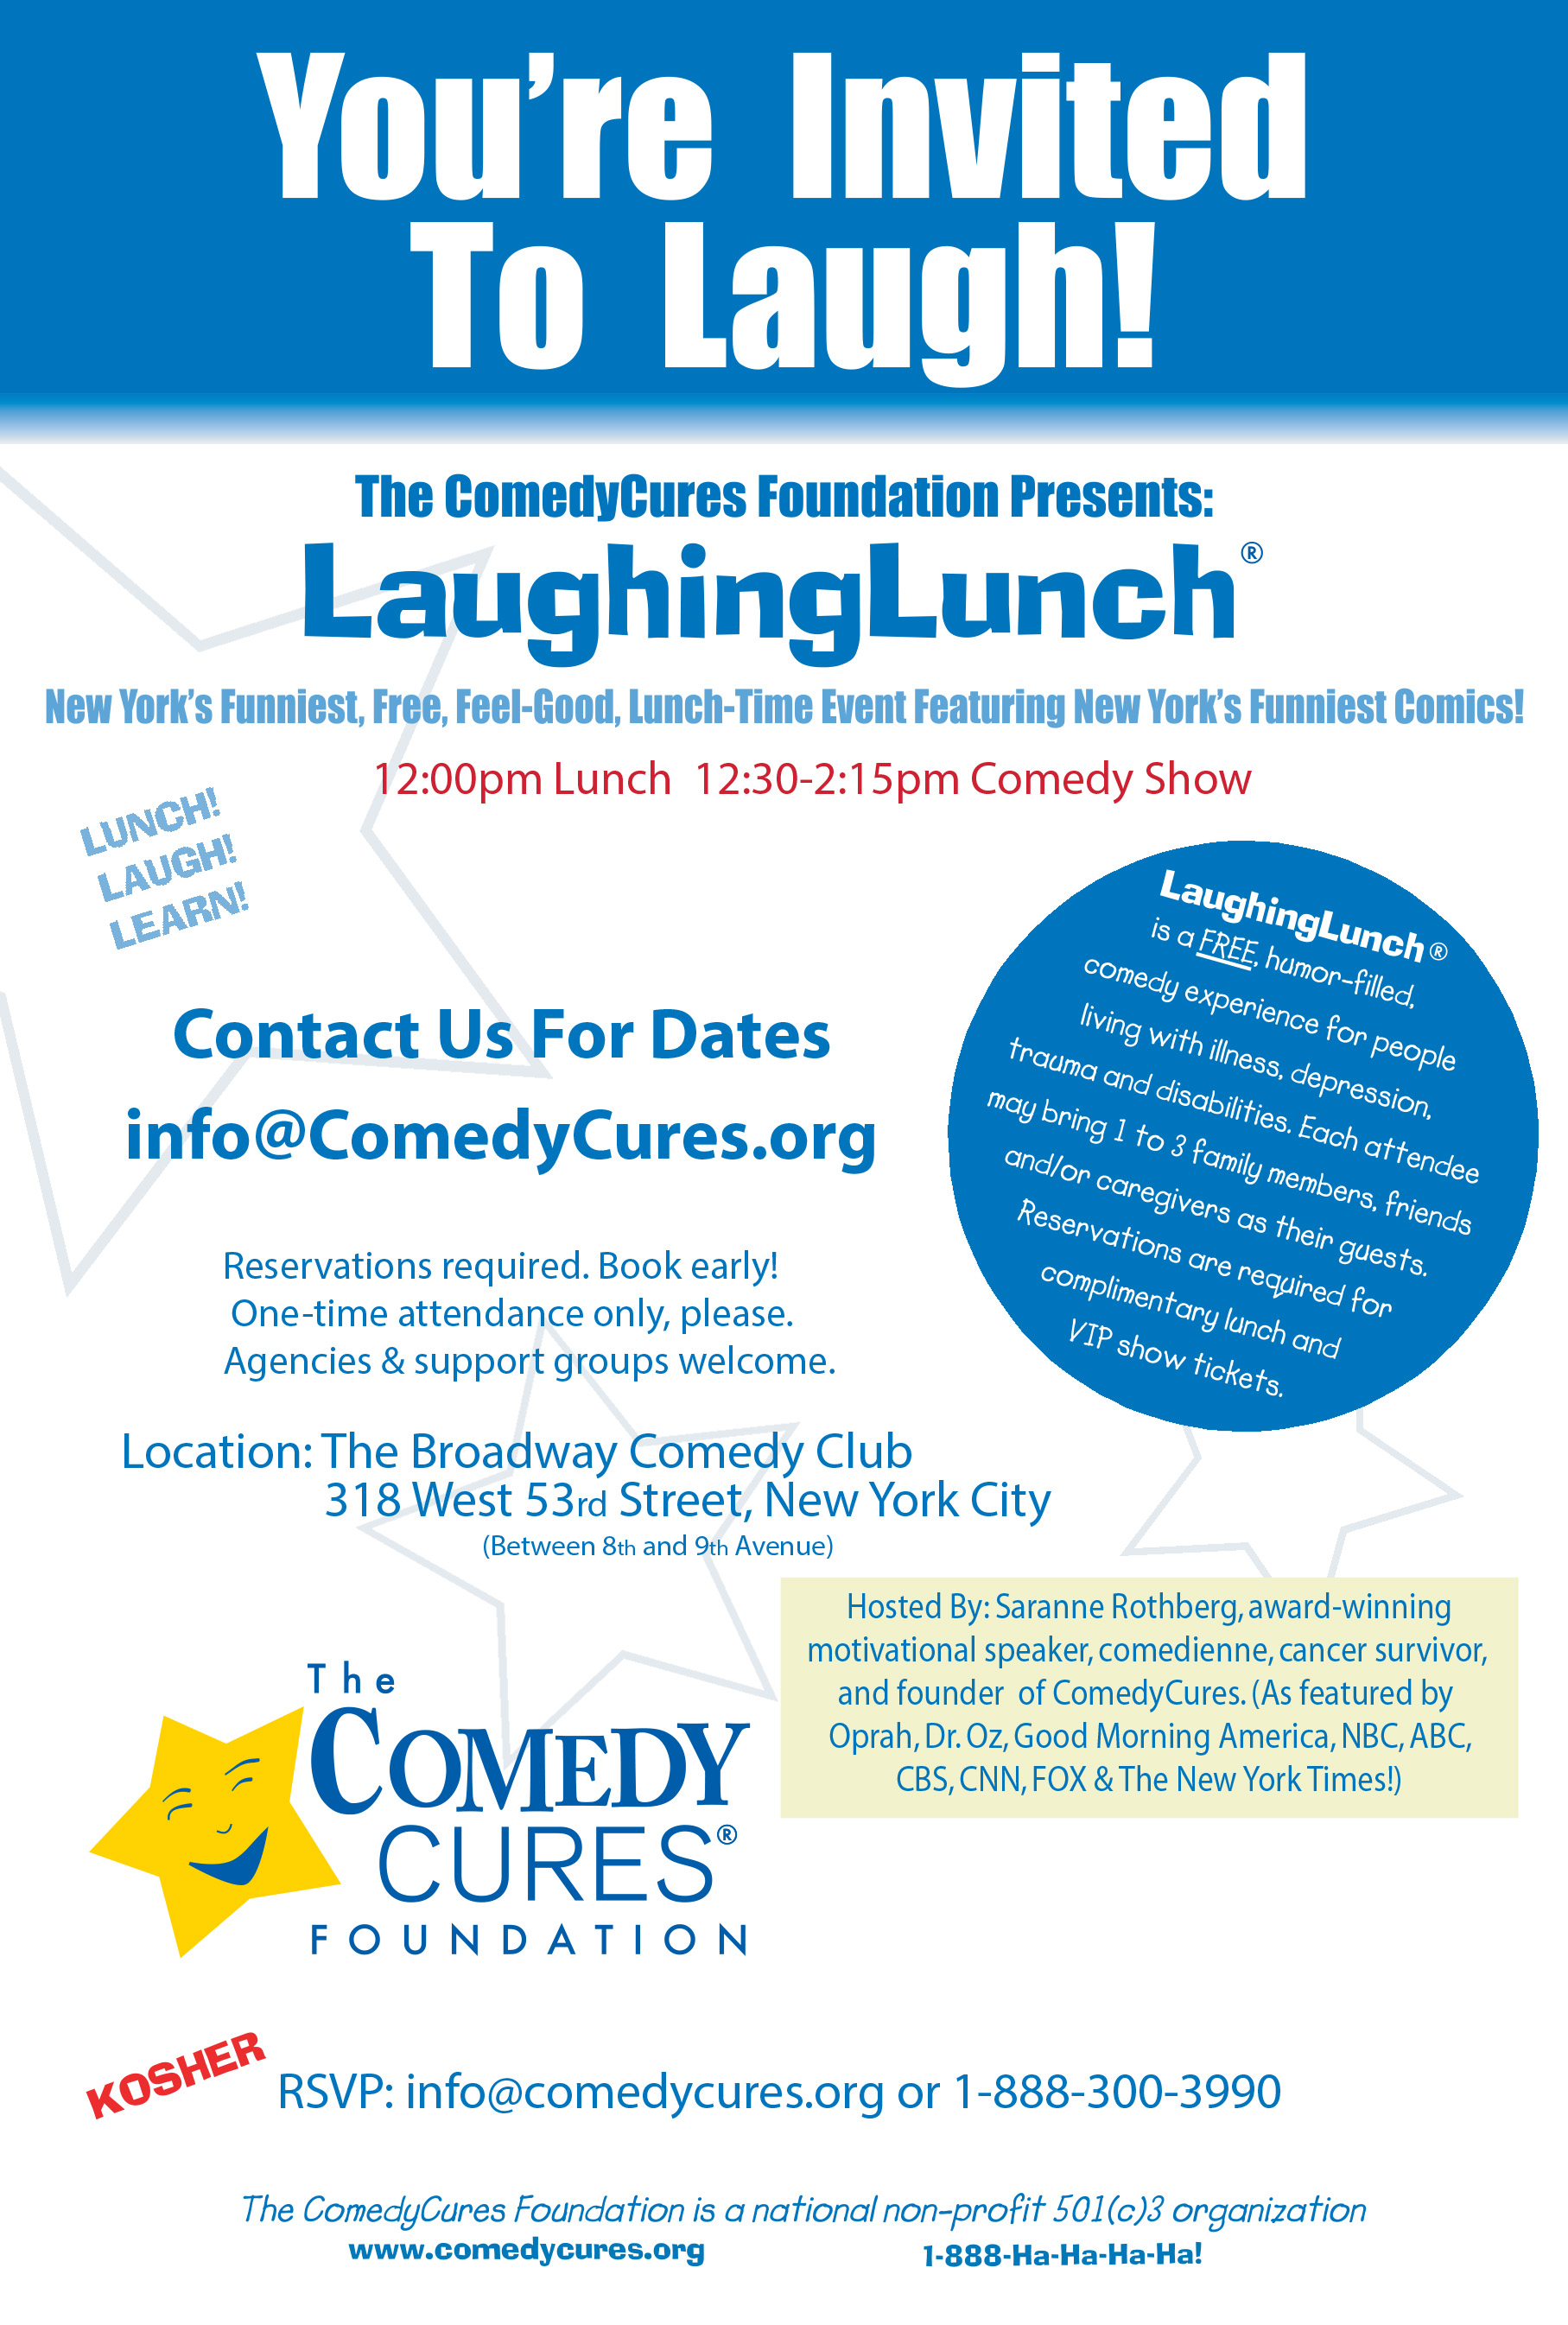 CC LaughingLunch Contact us for dates.jpg